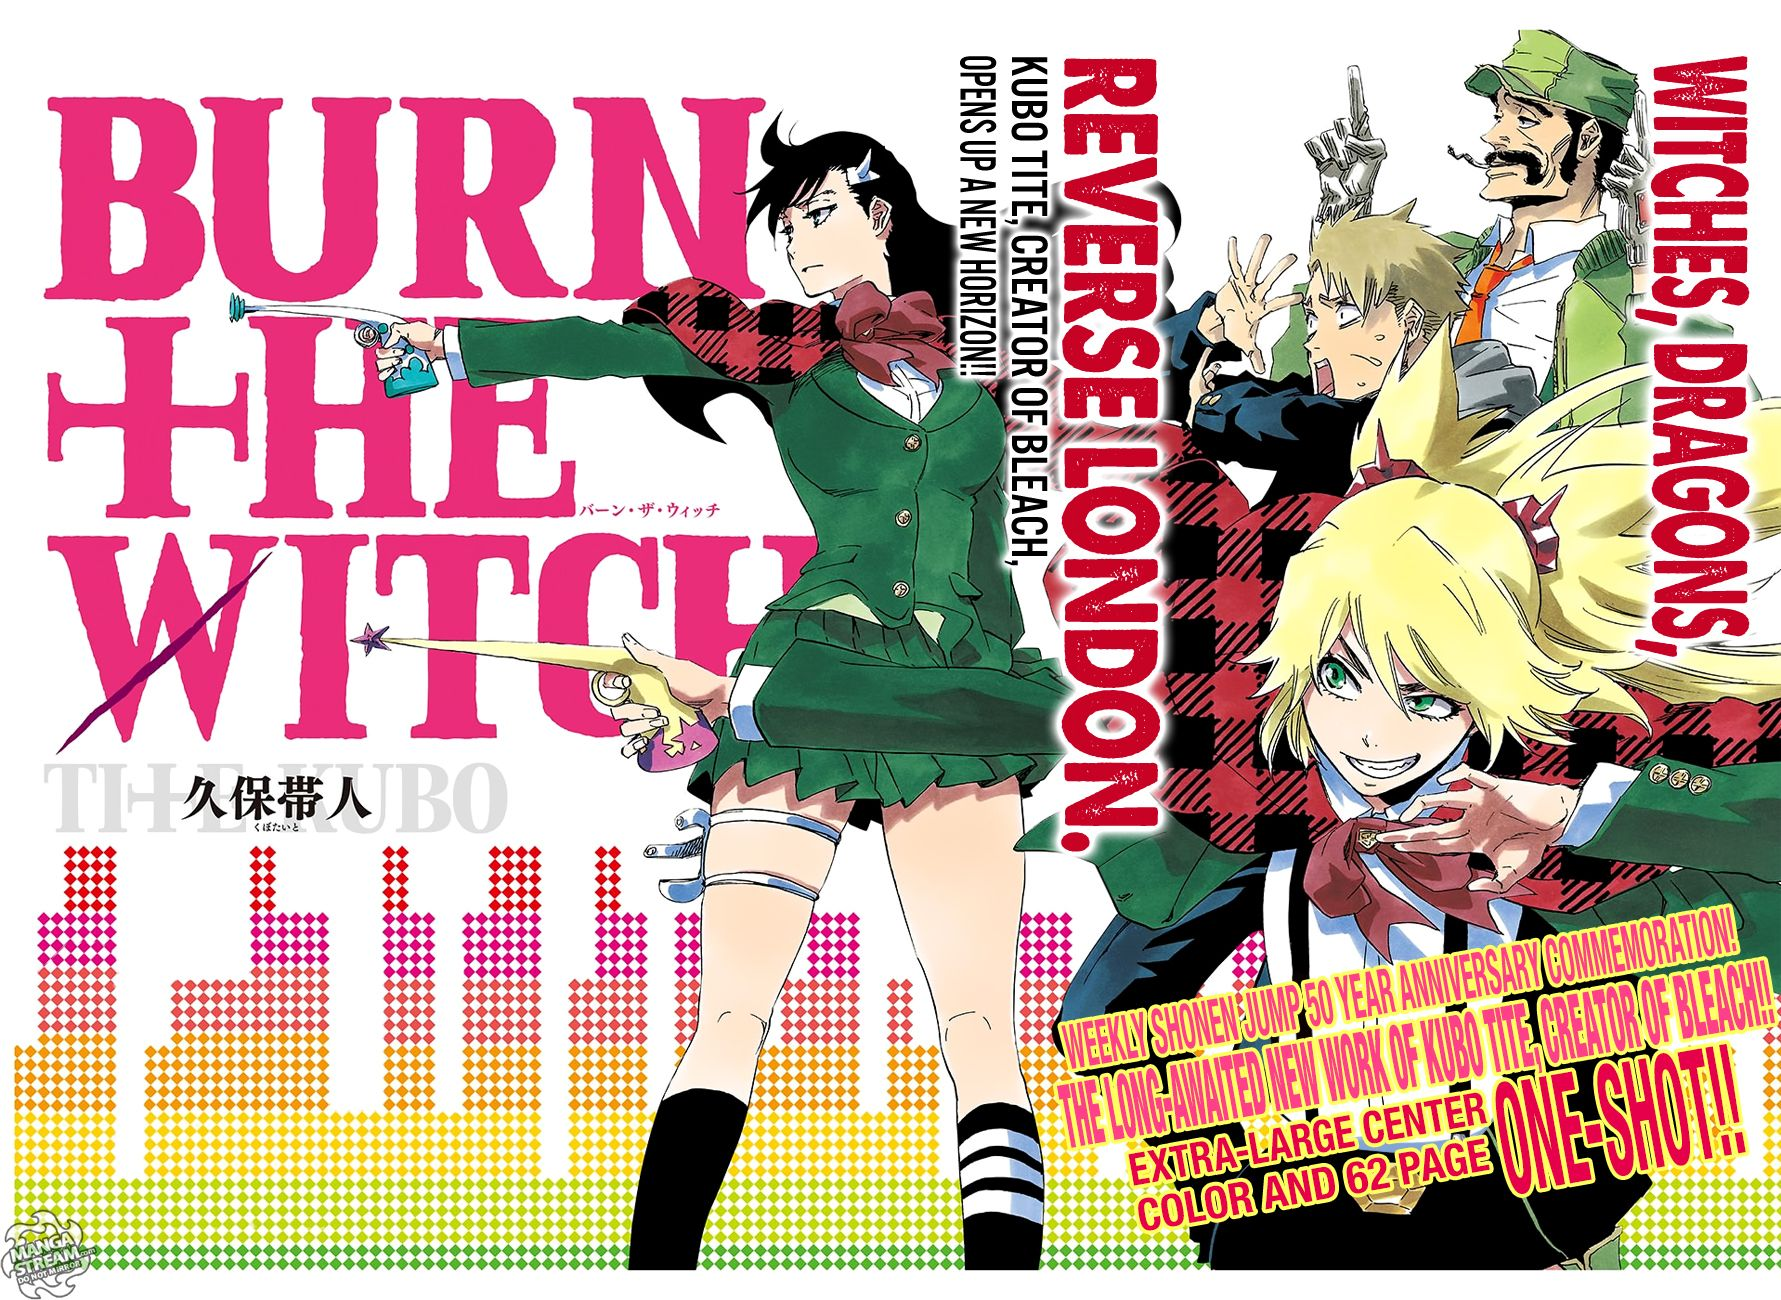 Burn the Witch Tite Kubo manga one shot review Witch